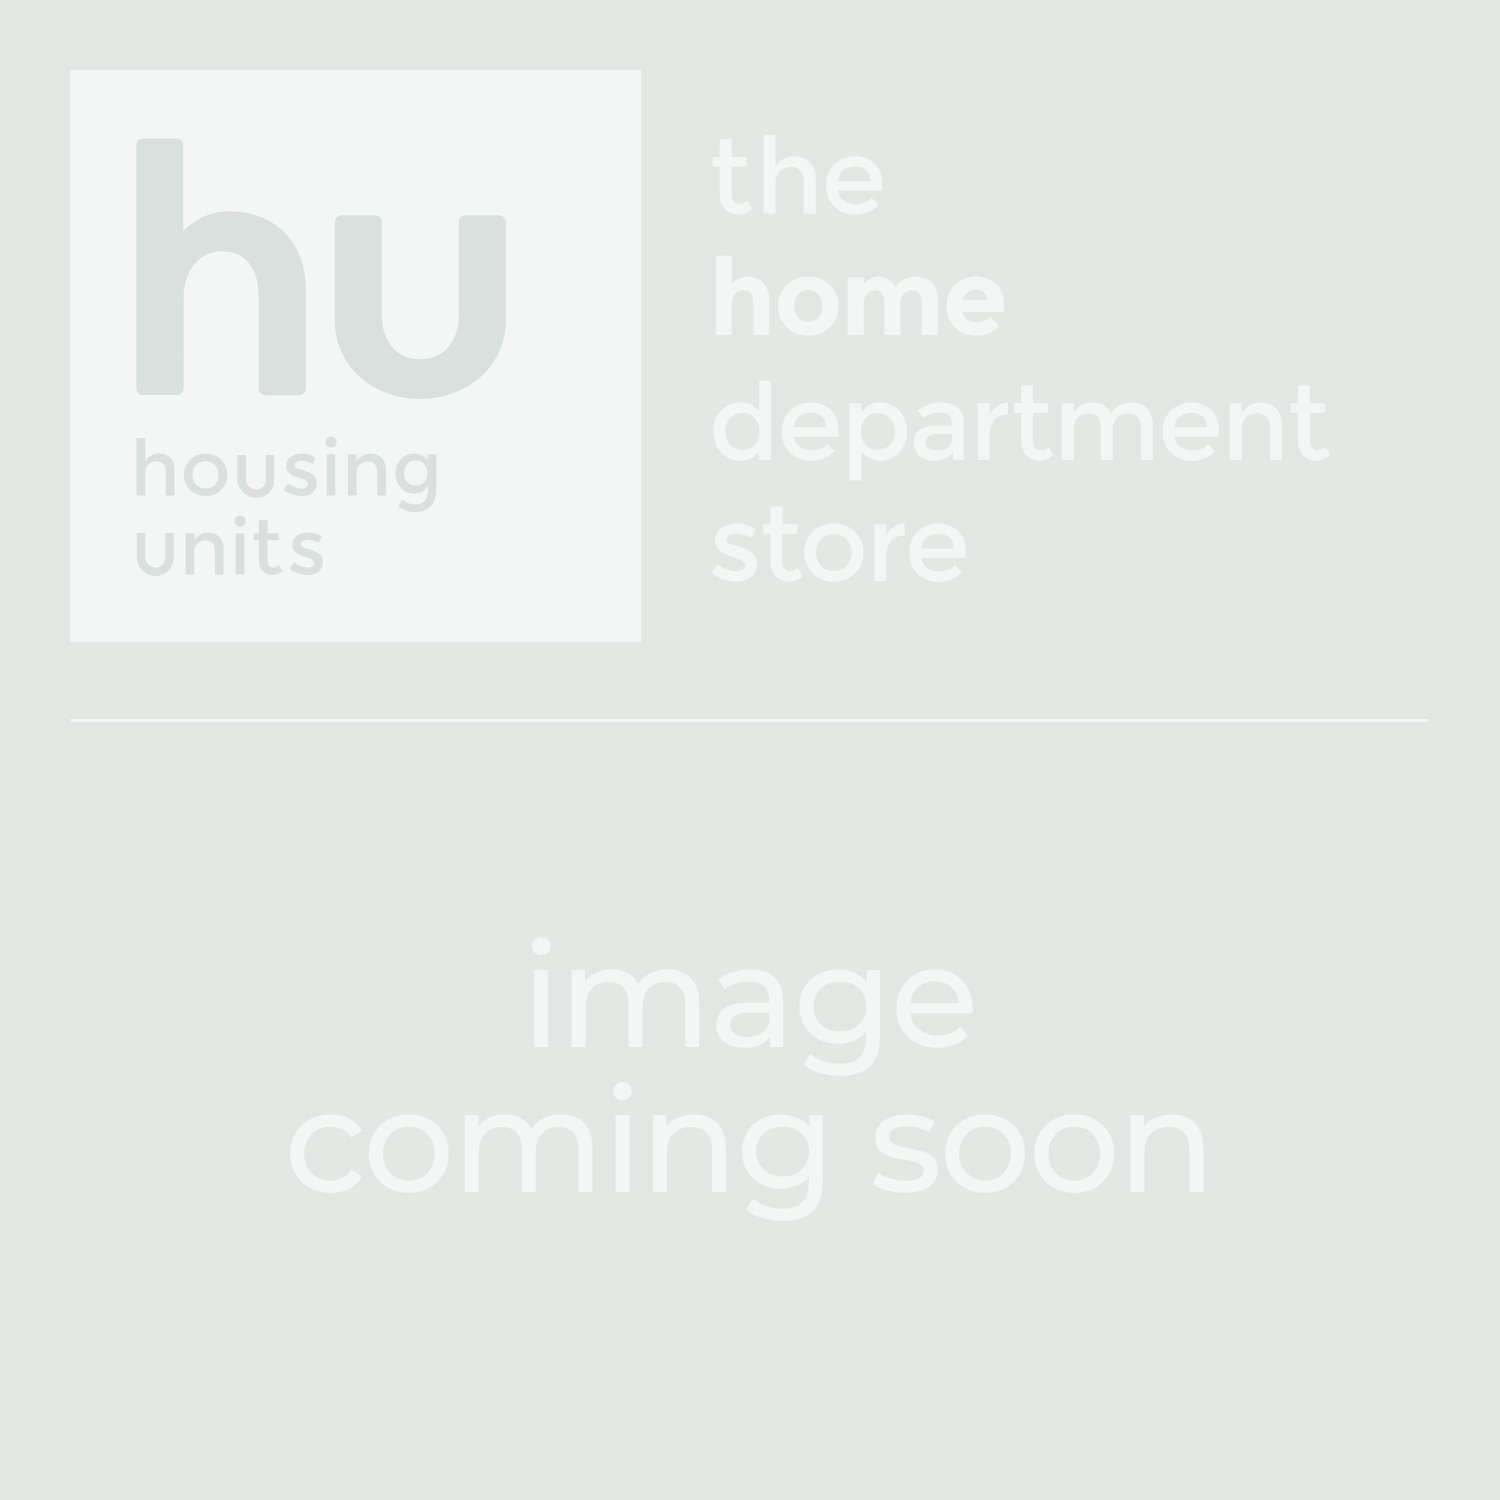 Theodore Wide Sideboard - Lifestyle | Housing Units